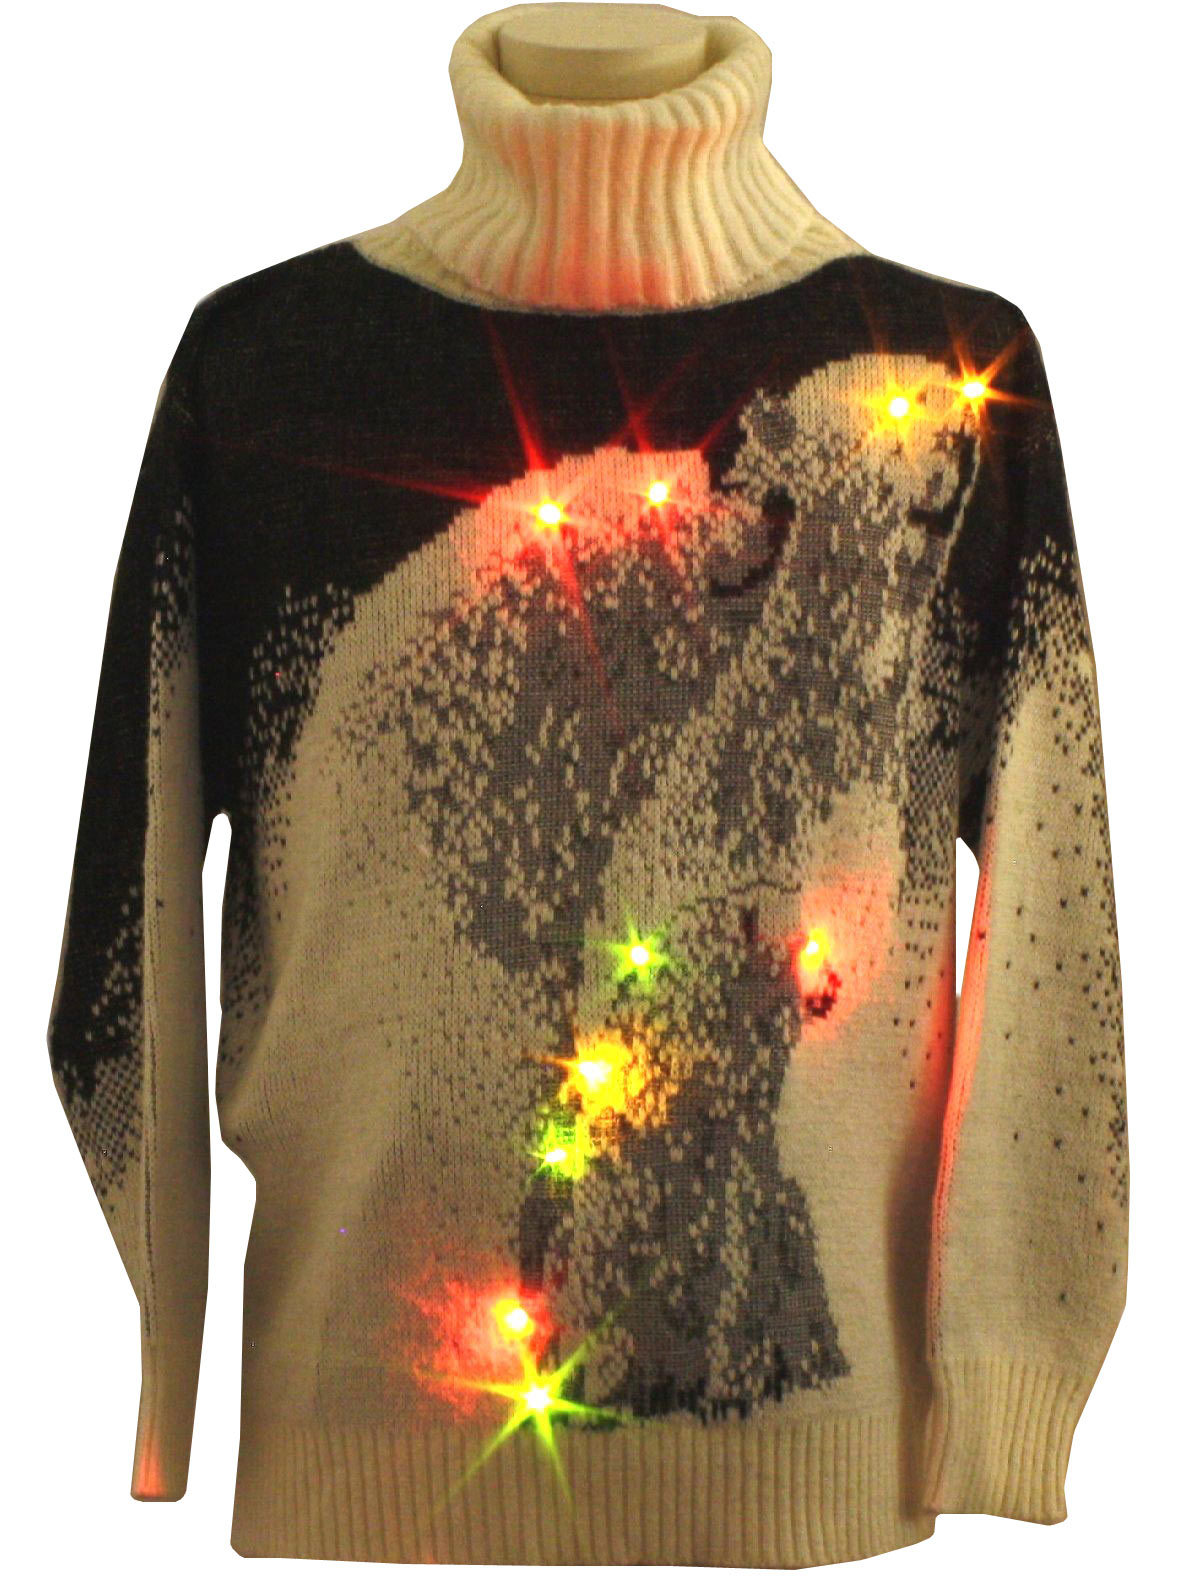 Womens Lightup Ugly Christmas Sweater: -Barbra Sue- Womens white and ...